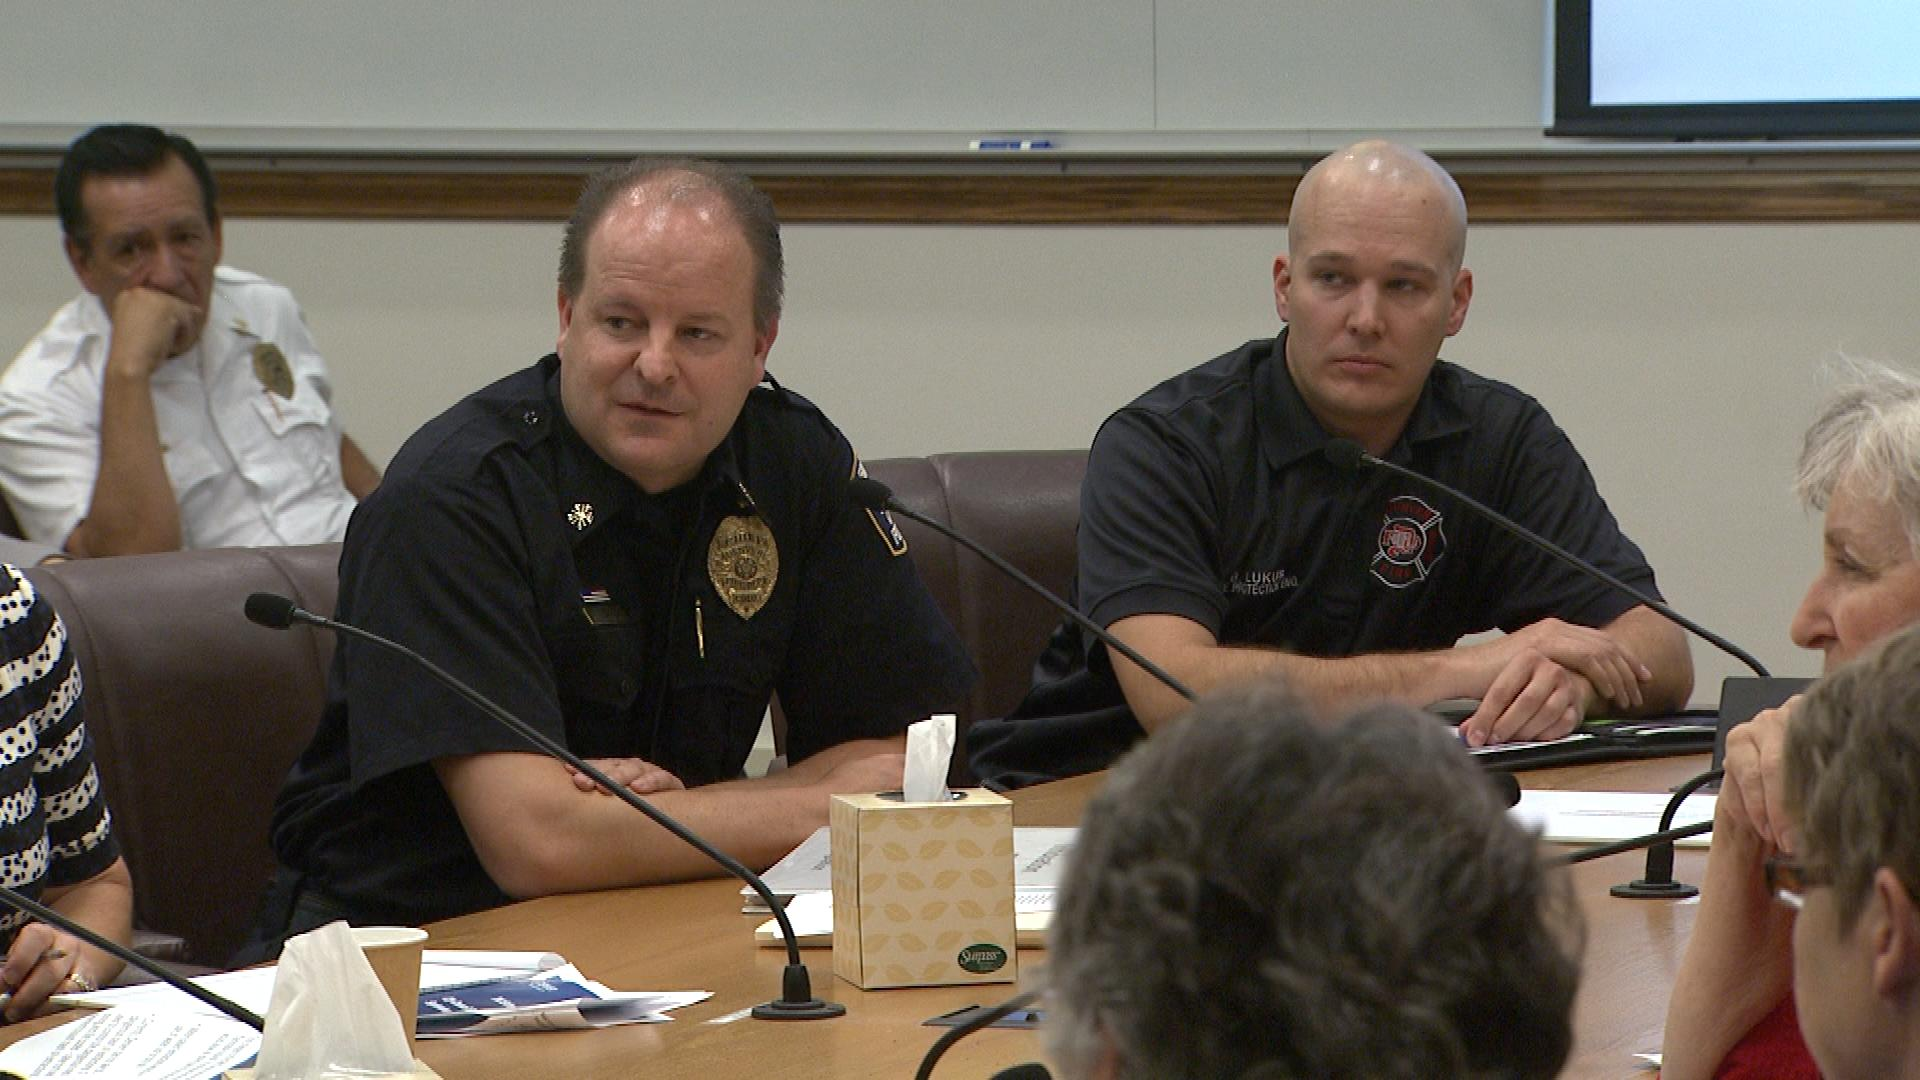 Denver Fire Department Chief Eric Tade, left, during Tuesday's City Council hearing (credit: CBS)